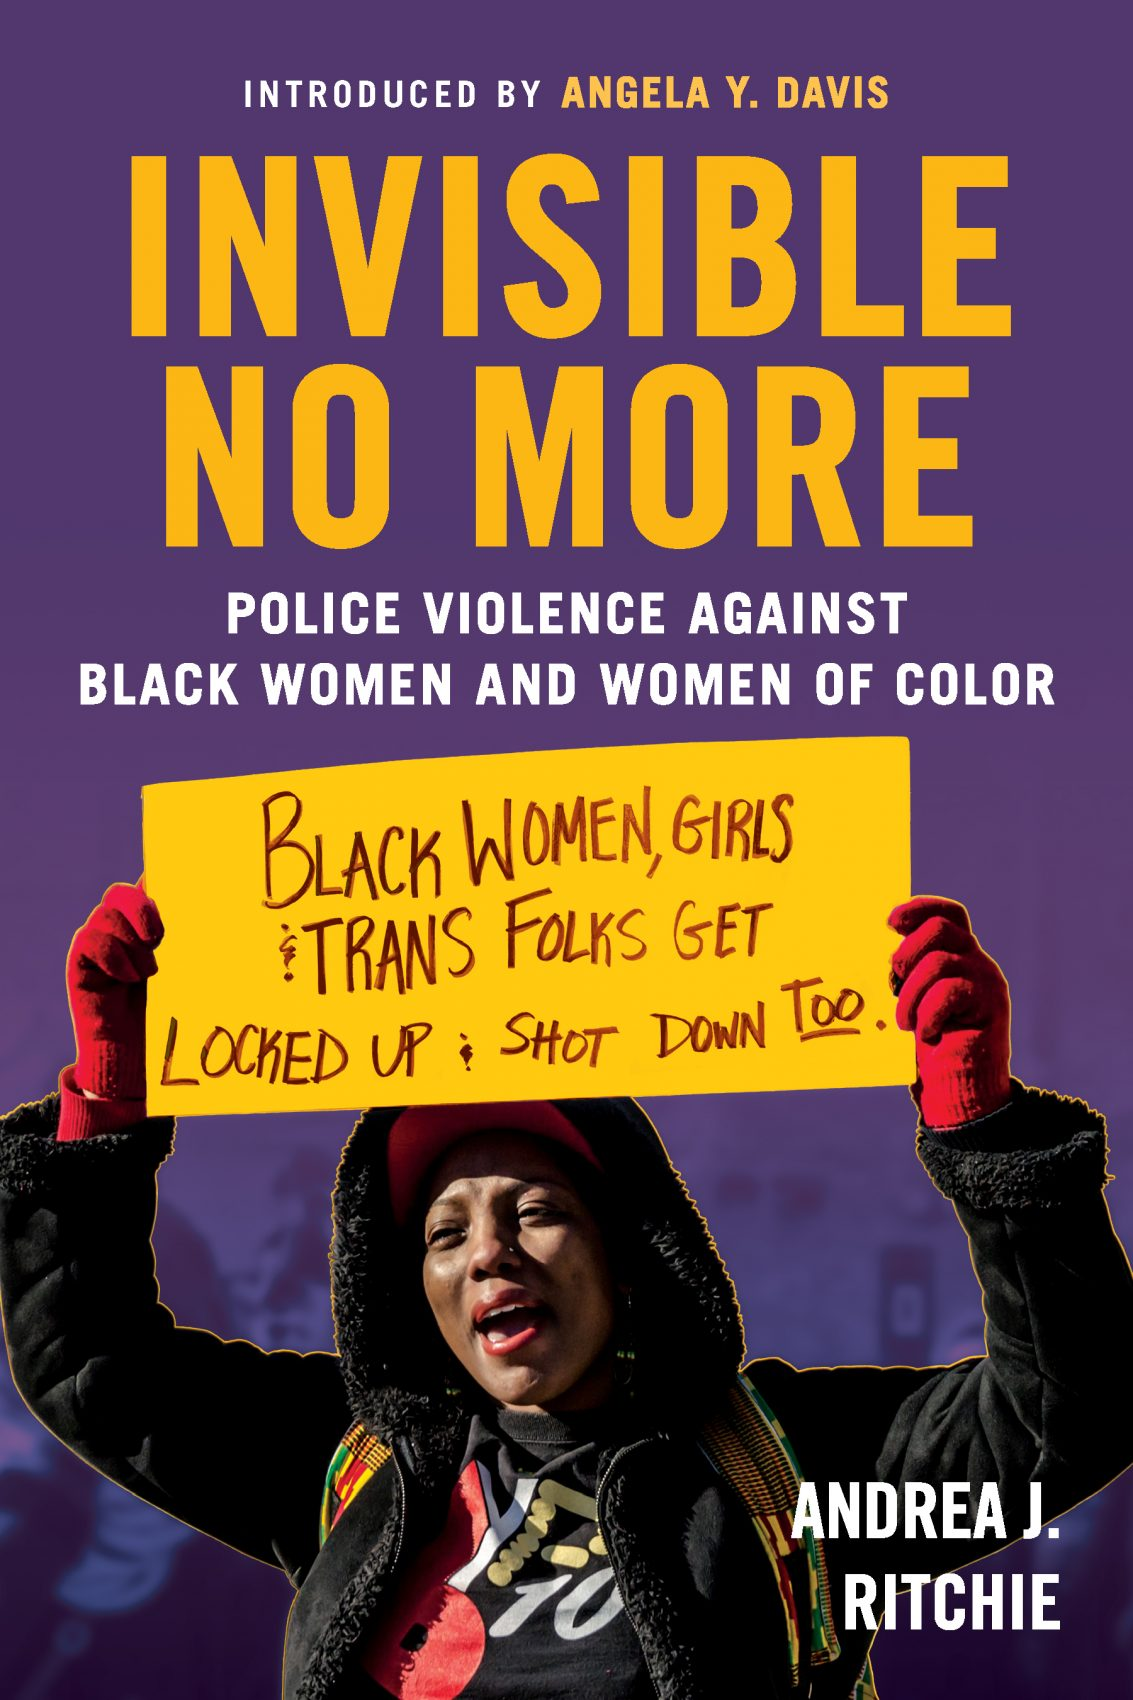 The Invisibility Of Police Violence On Women Of Color